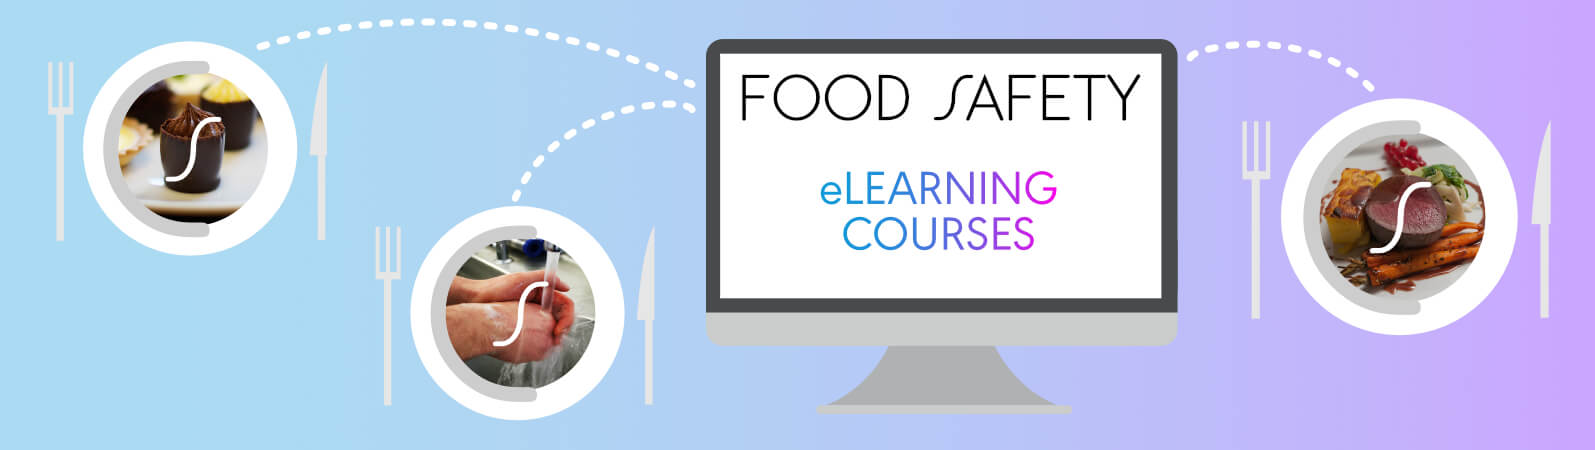 Online Food Safety Training